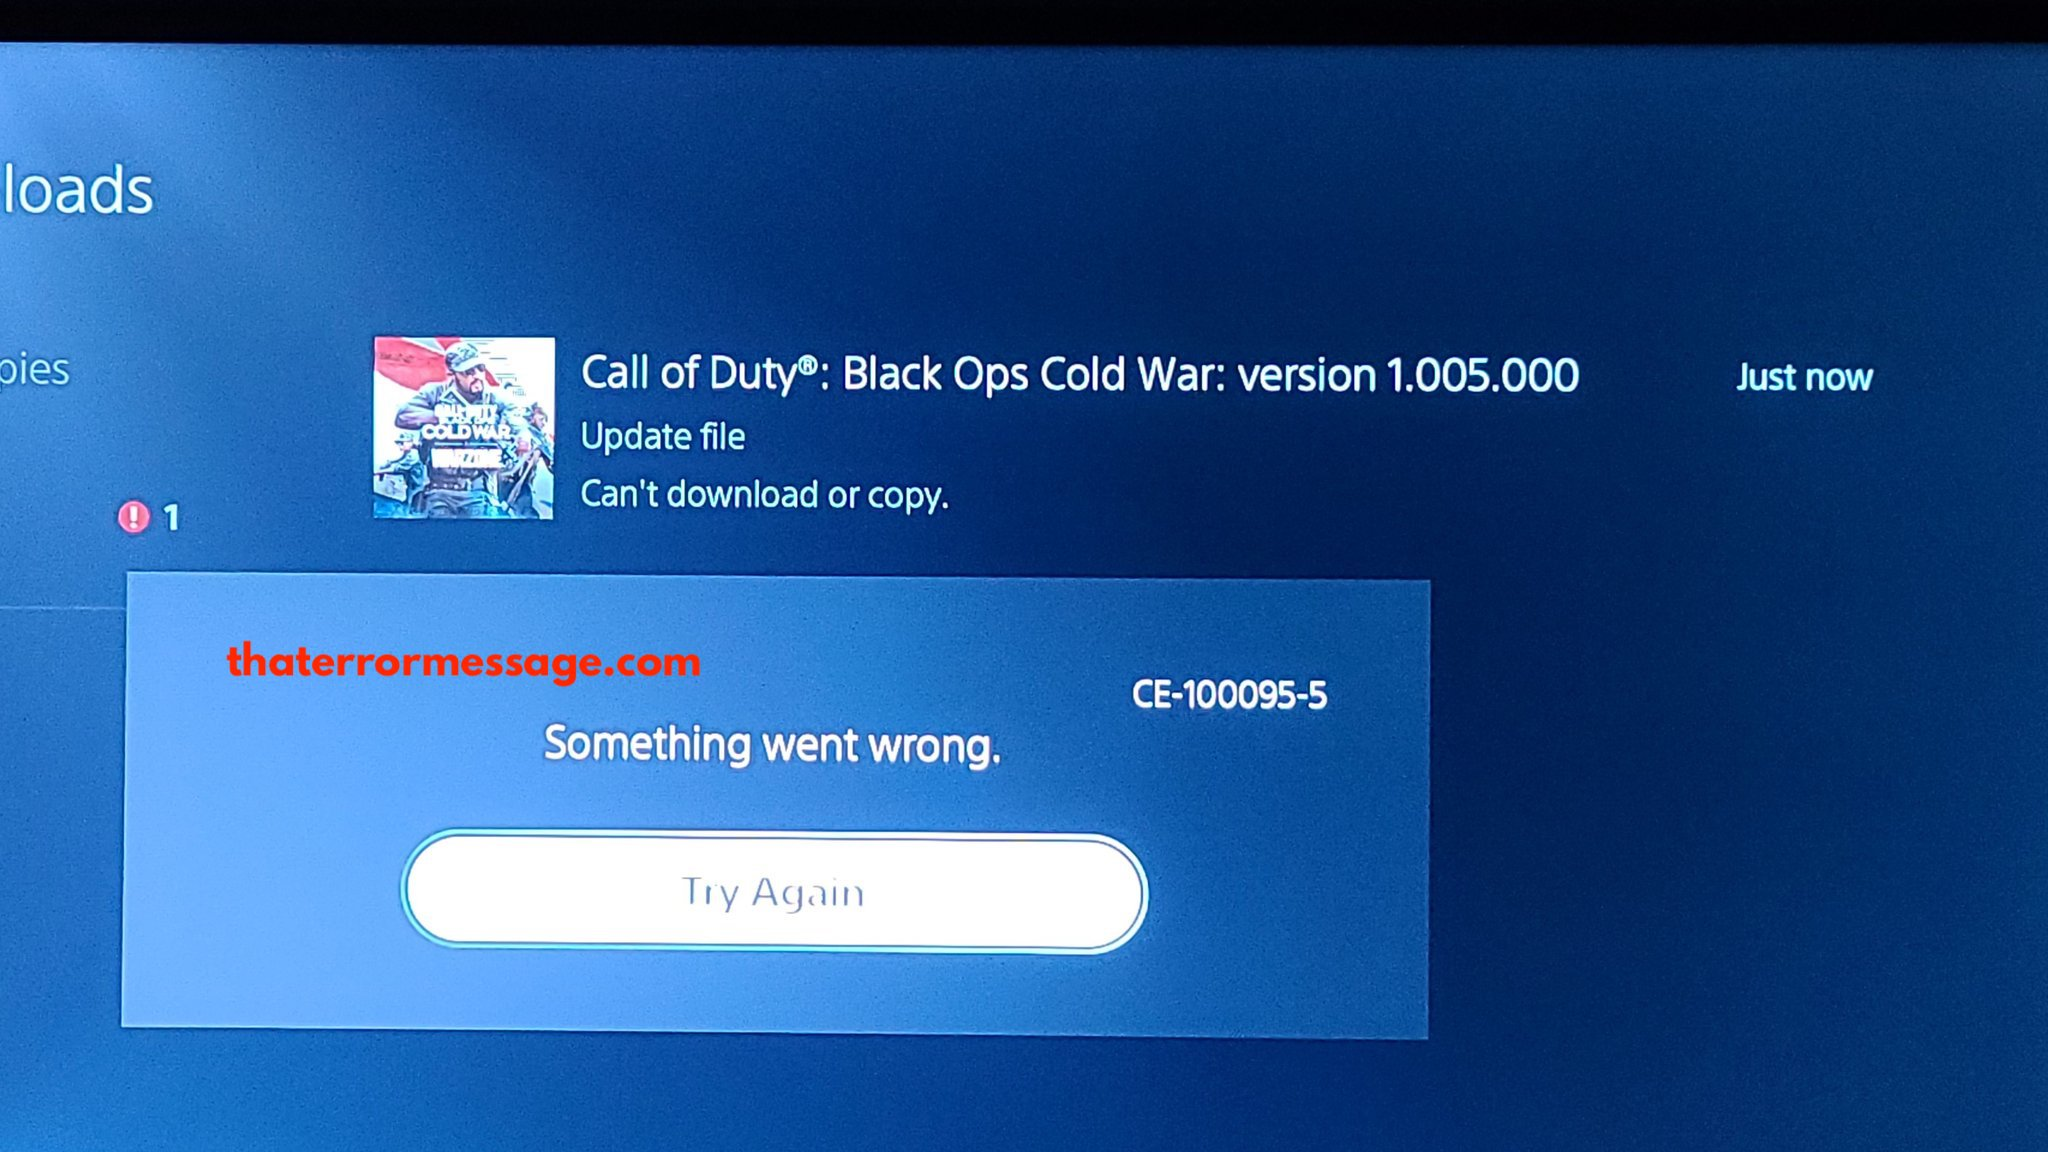 something-went-wrong-ce-100095-5-playstation.jpg